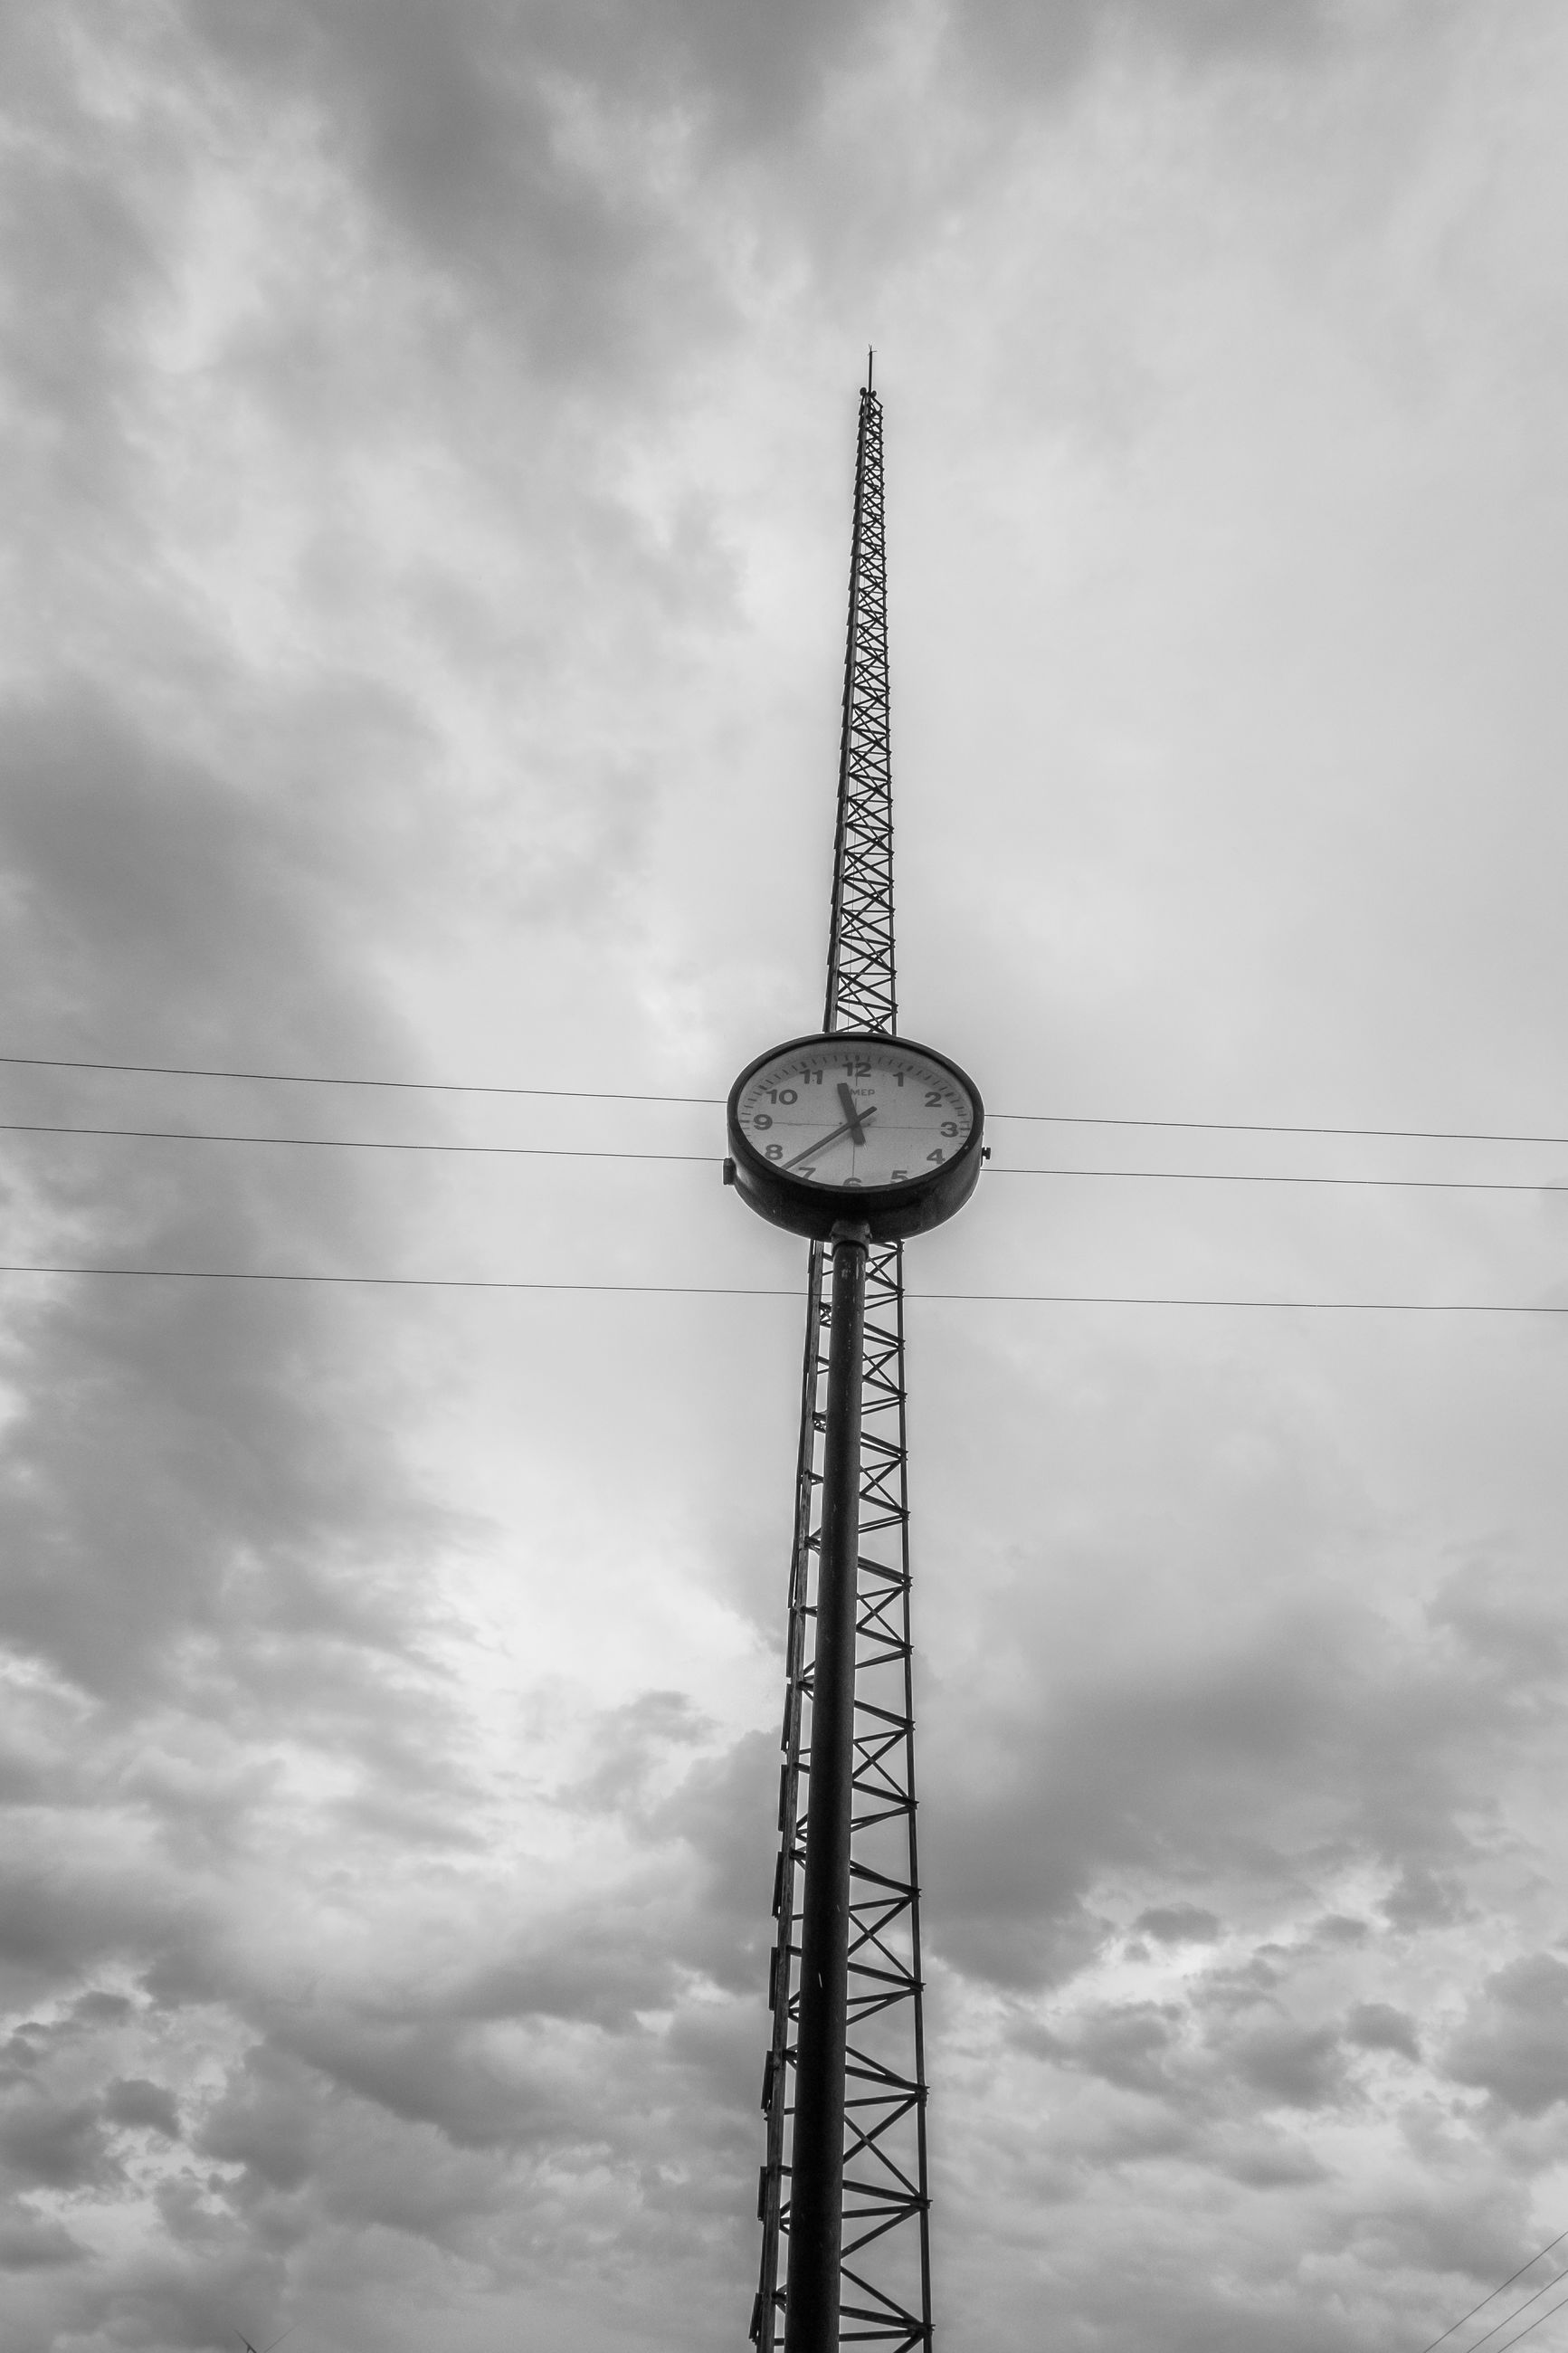 low angle view, sky, cloud - sky, cloudy, tall - high, bird, silhouette, communication, cloud, amusement park, animal themes, animals in the wild, built structure, amusement park ride, outdoors, flying, tower, overcast, dusk, communications tower